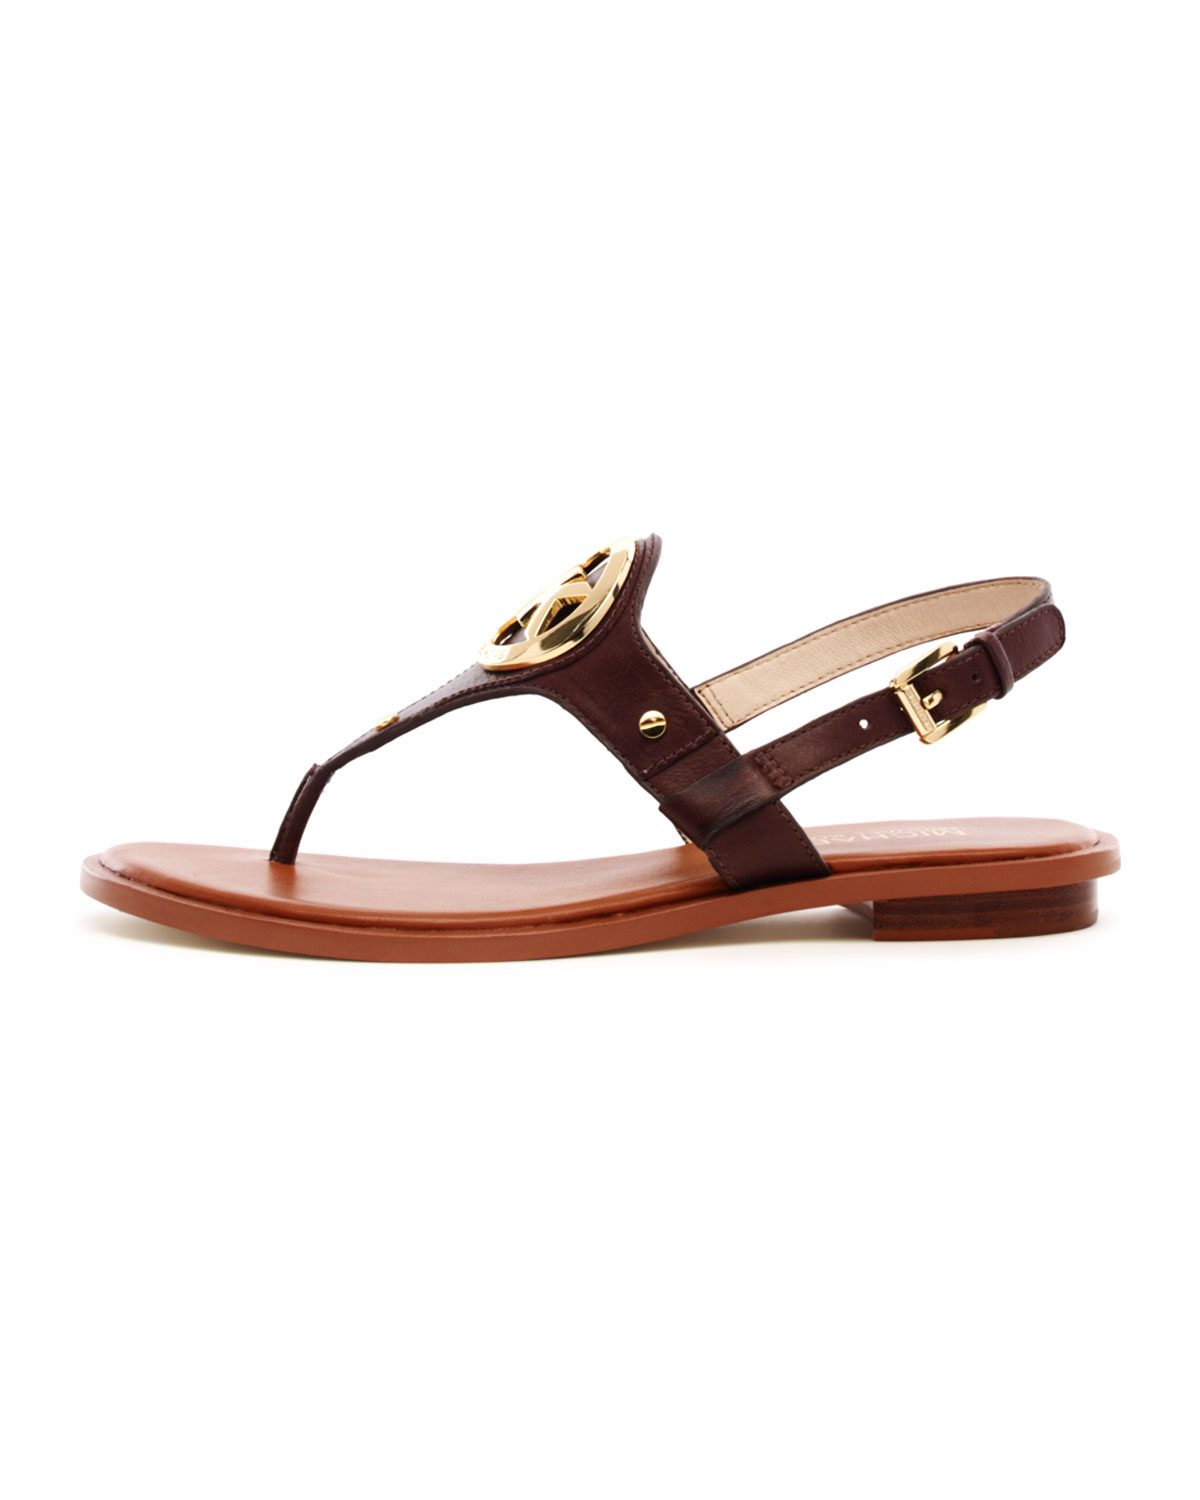 Lyst Michael Kors Aubrey Logo Thong Sandal In Brown